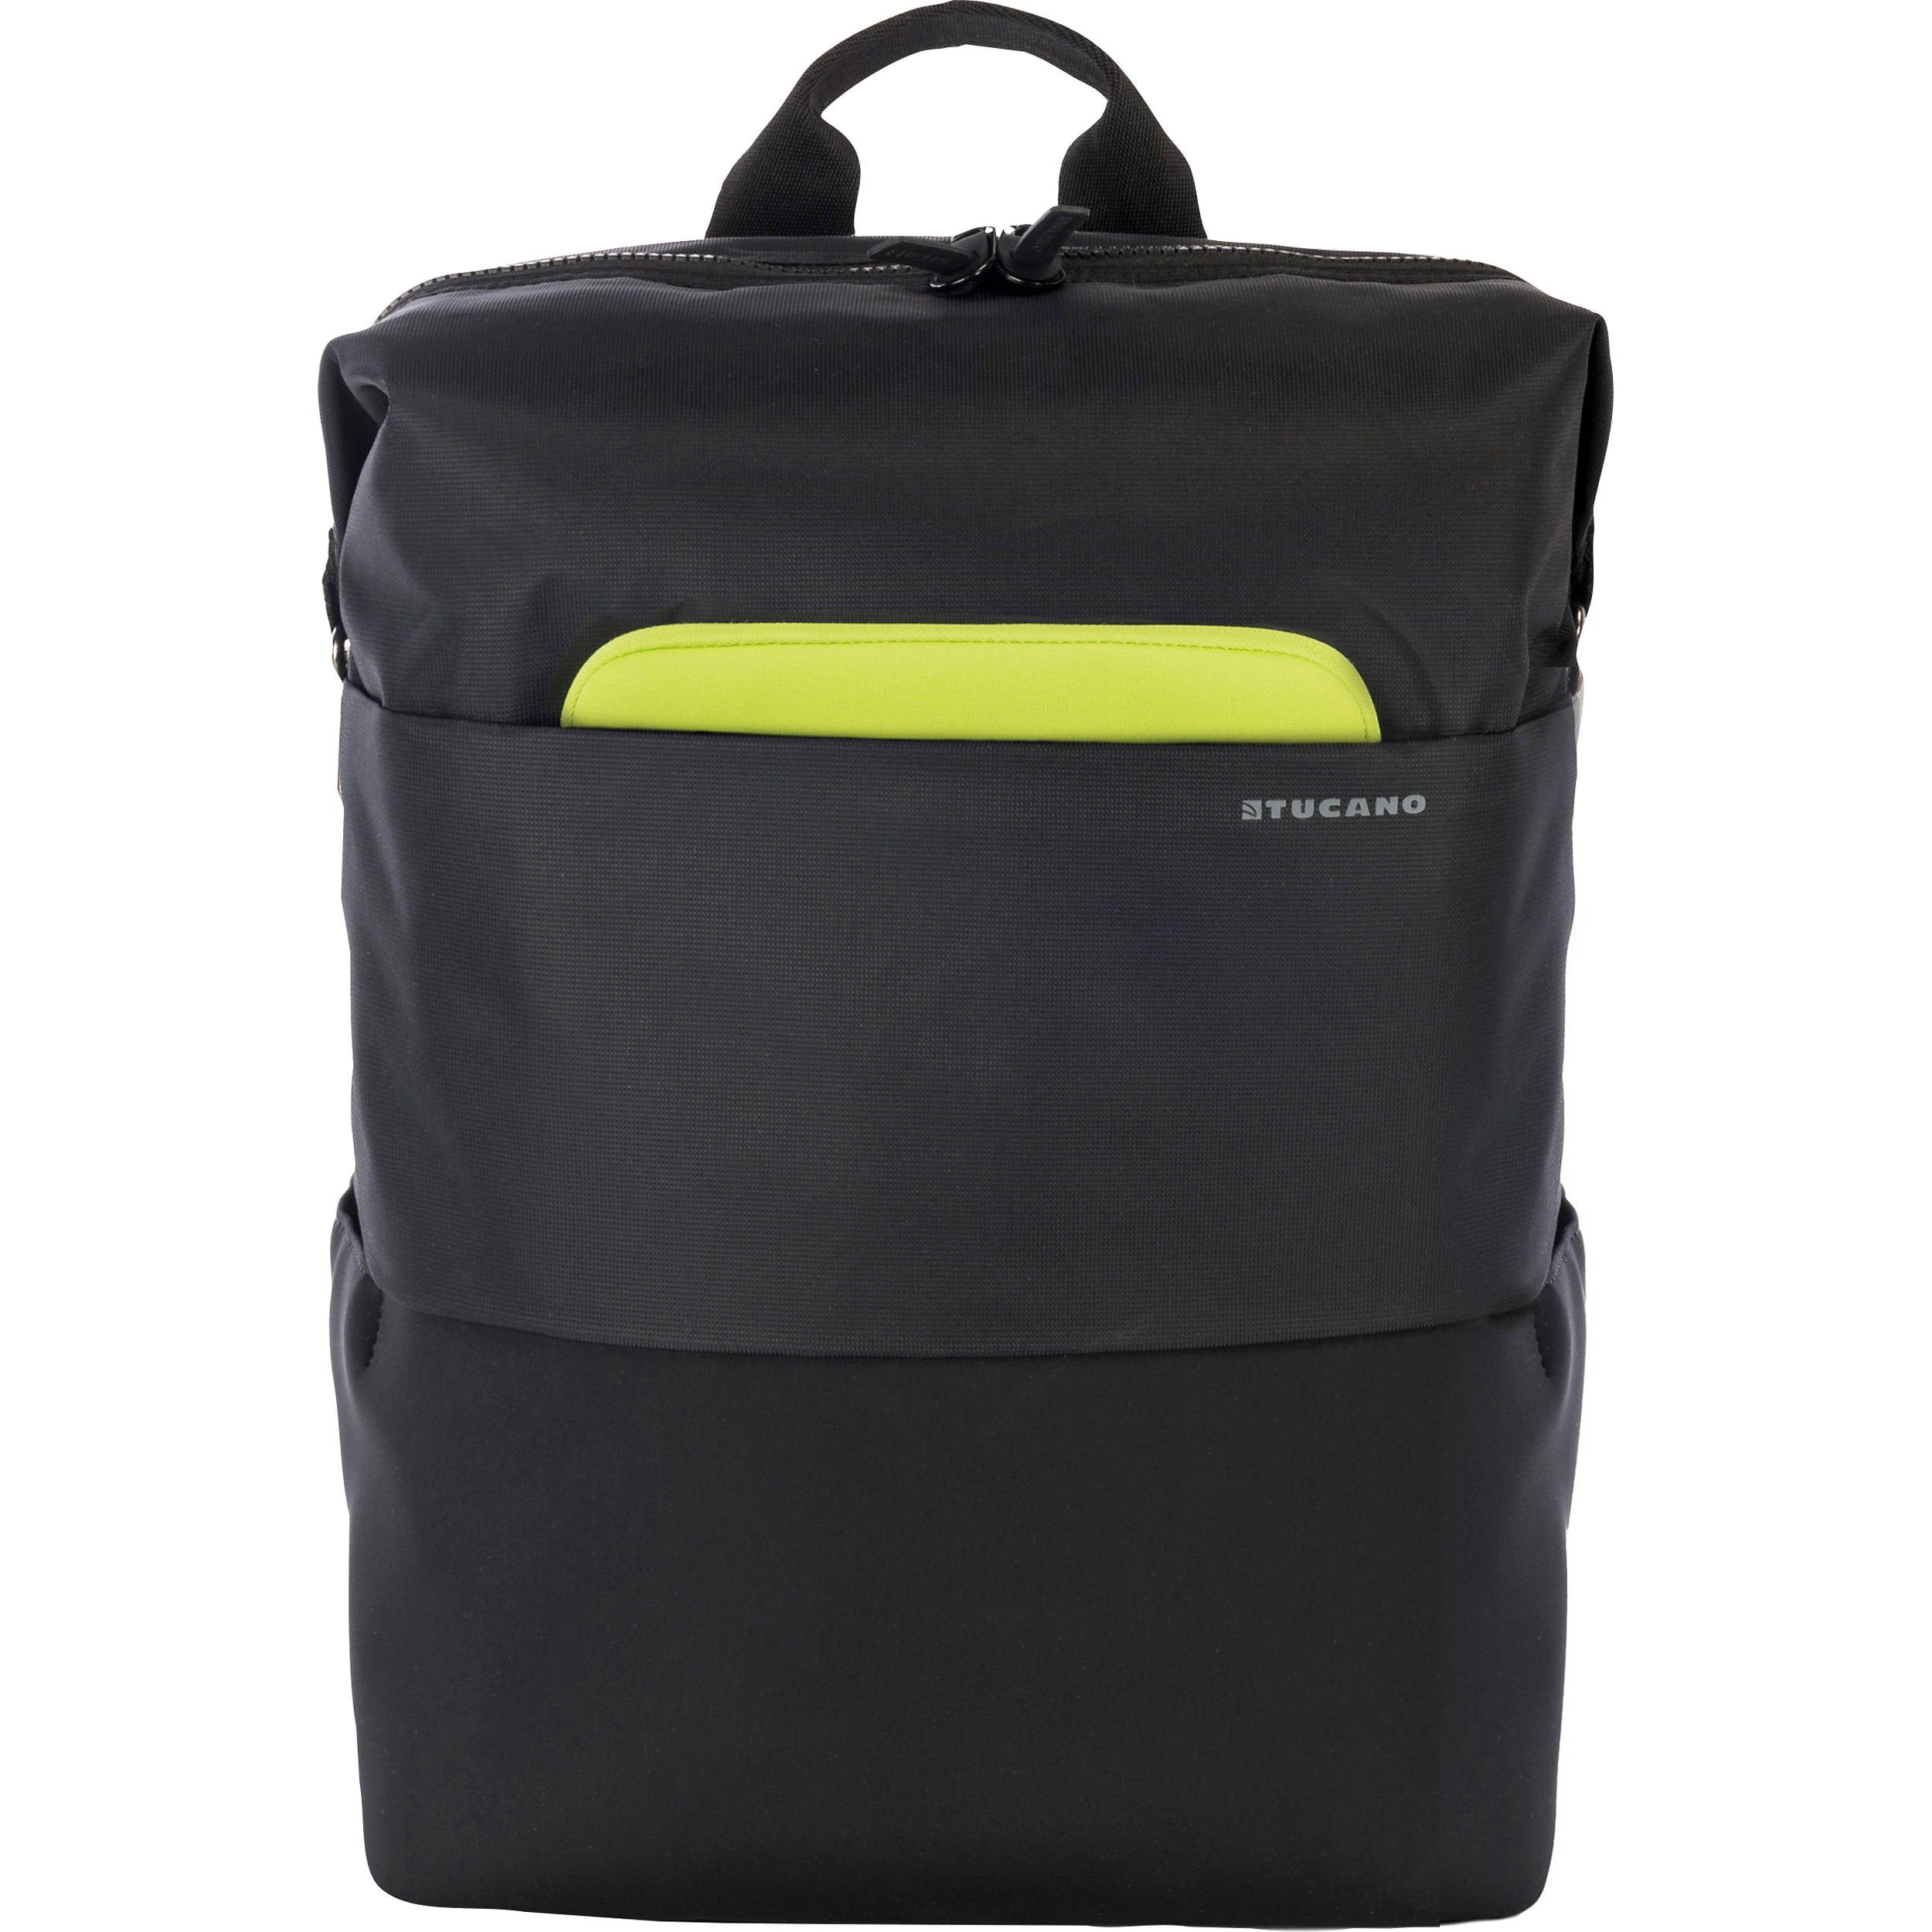 7bf8dffeee54 Laptop Backpack For Macbook Pro 15- Fenix Toulouse Handball